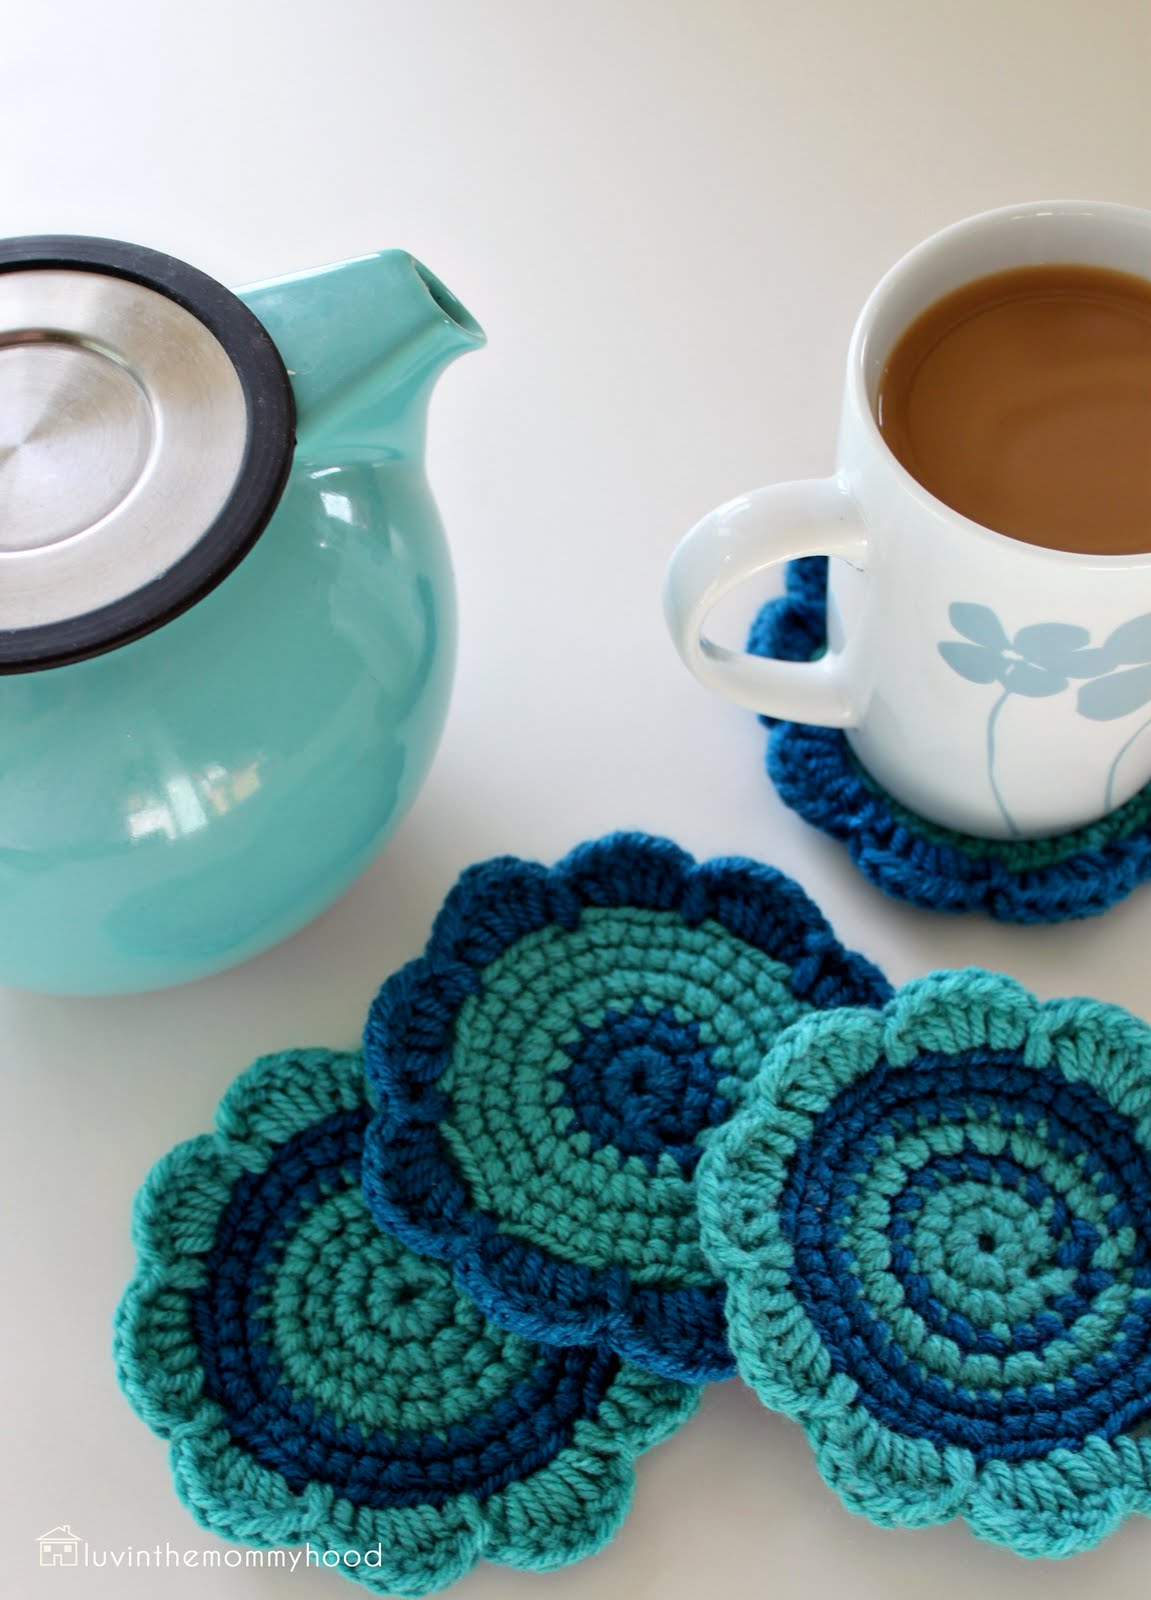 Crocheting Coasters : versus: jardain crochet coaster tutorial with guest rebecca of nook